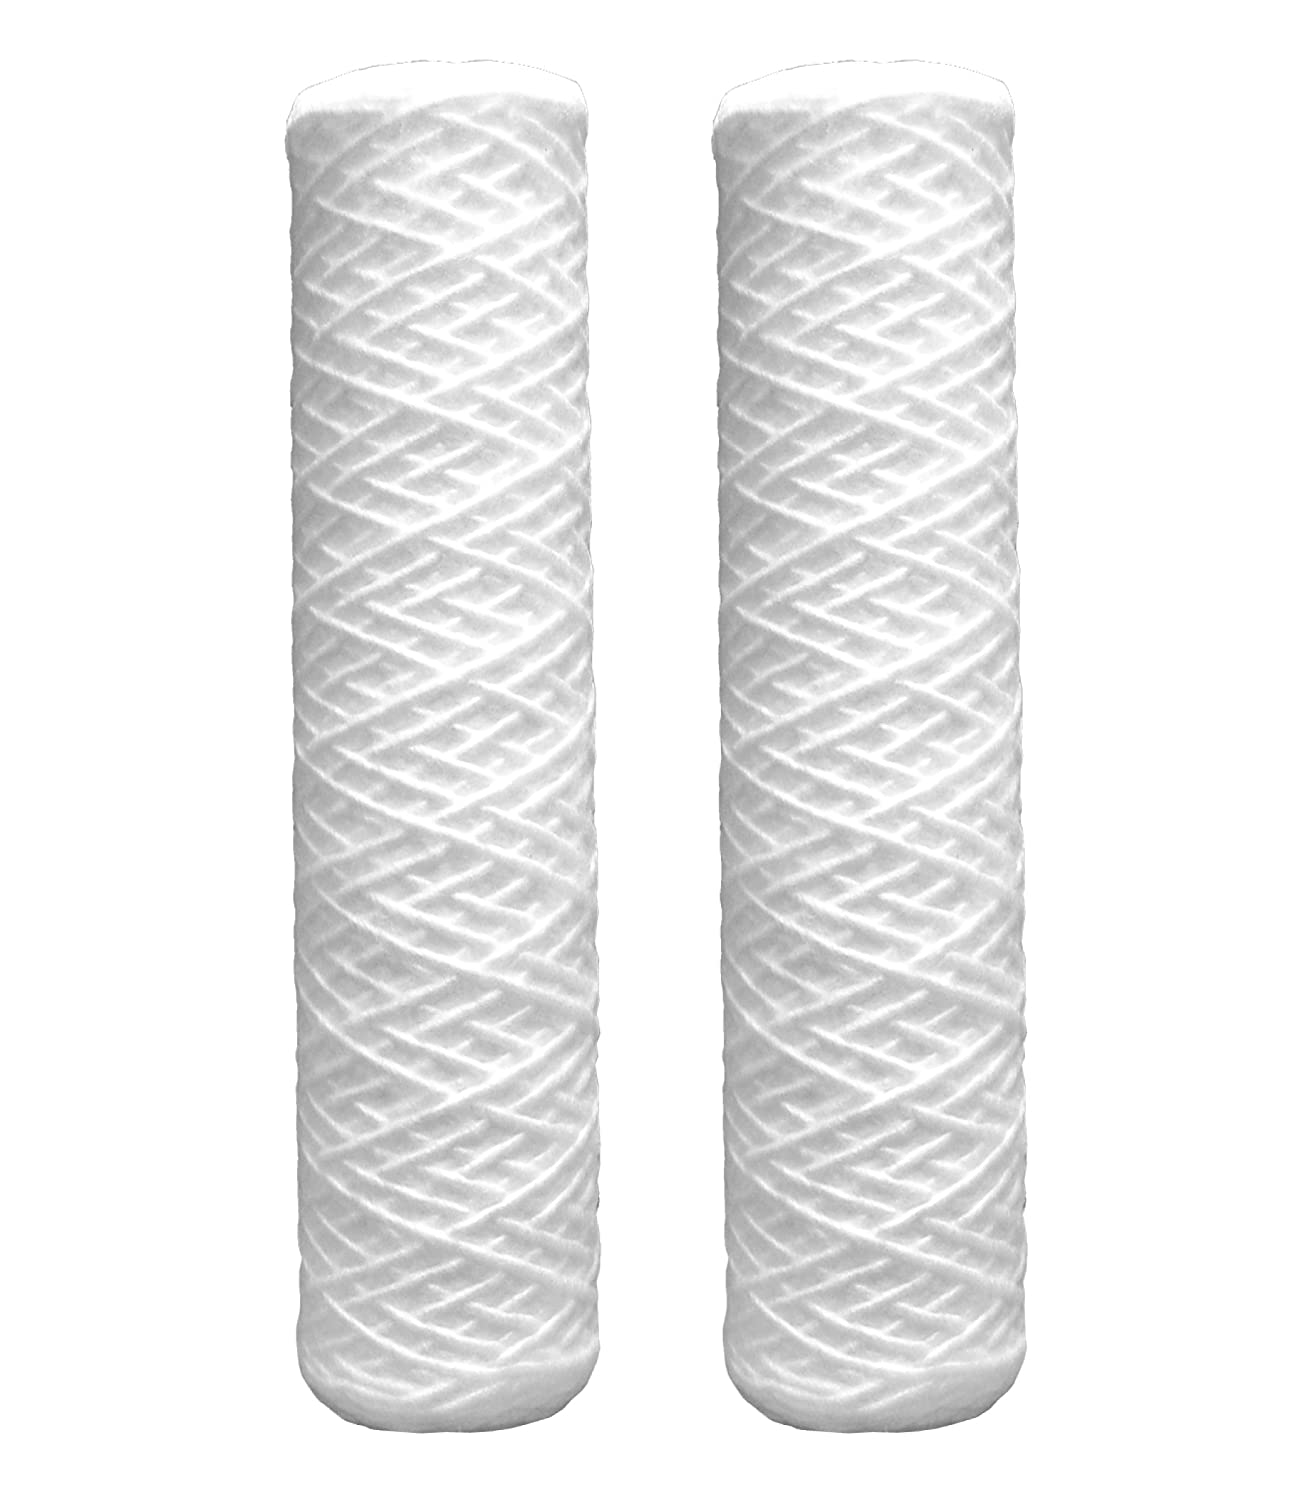 DuPont WFPFC4002 Universal Whole House String Wound Filter, 2-Pack